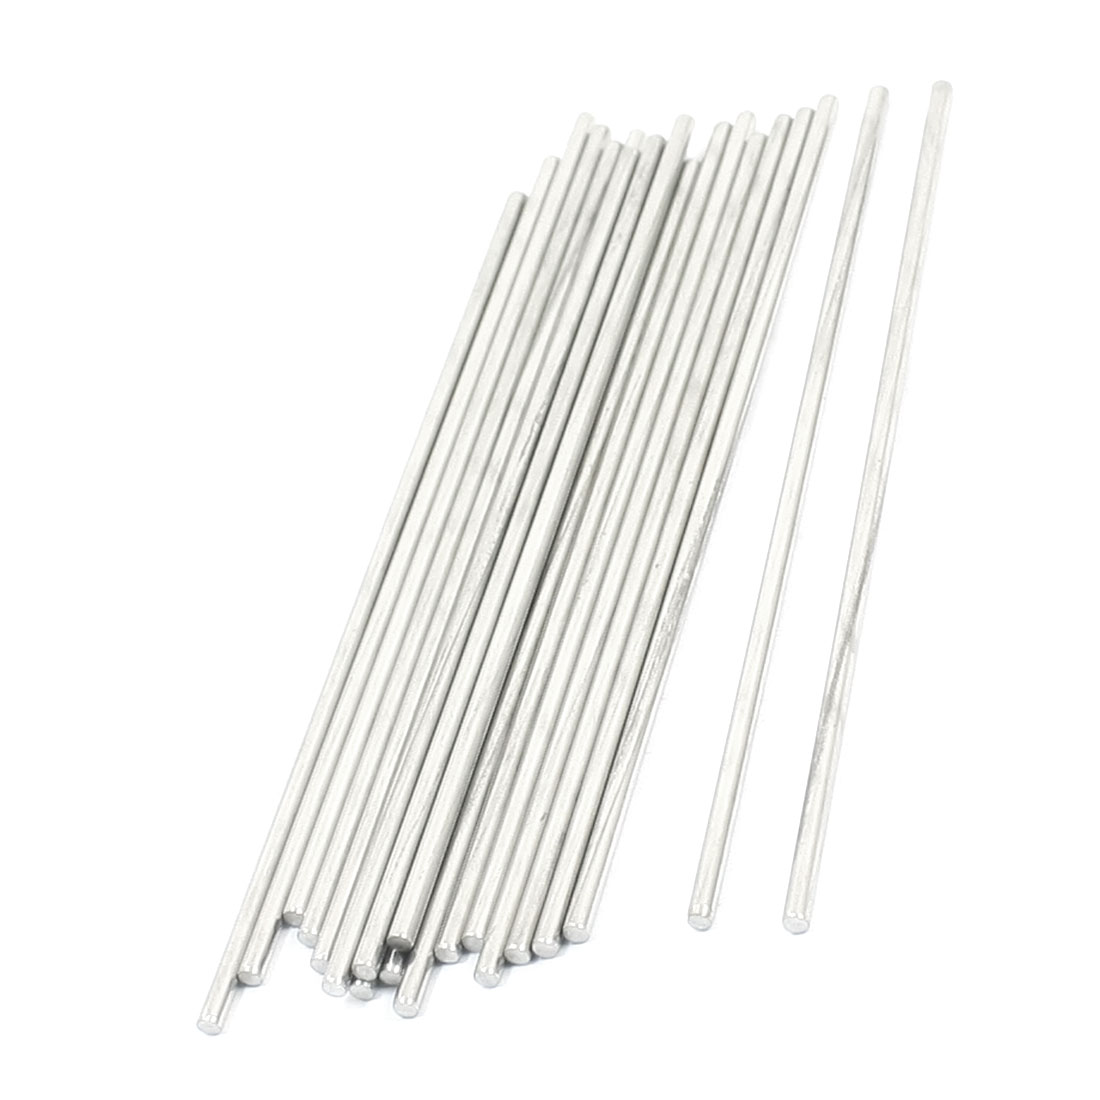 20Pcs Milling Welding Working Stainless Steel Round Rods 120 x 2.5mm